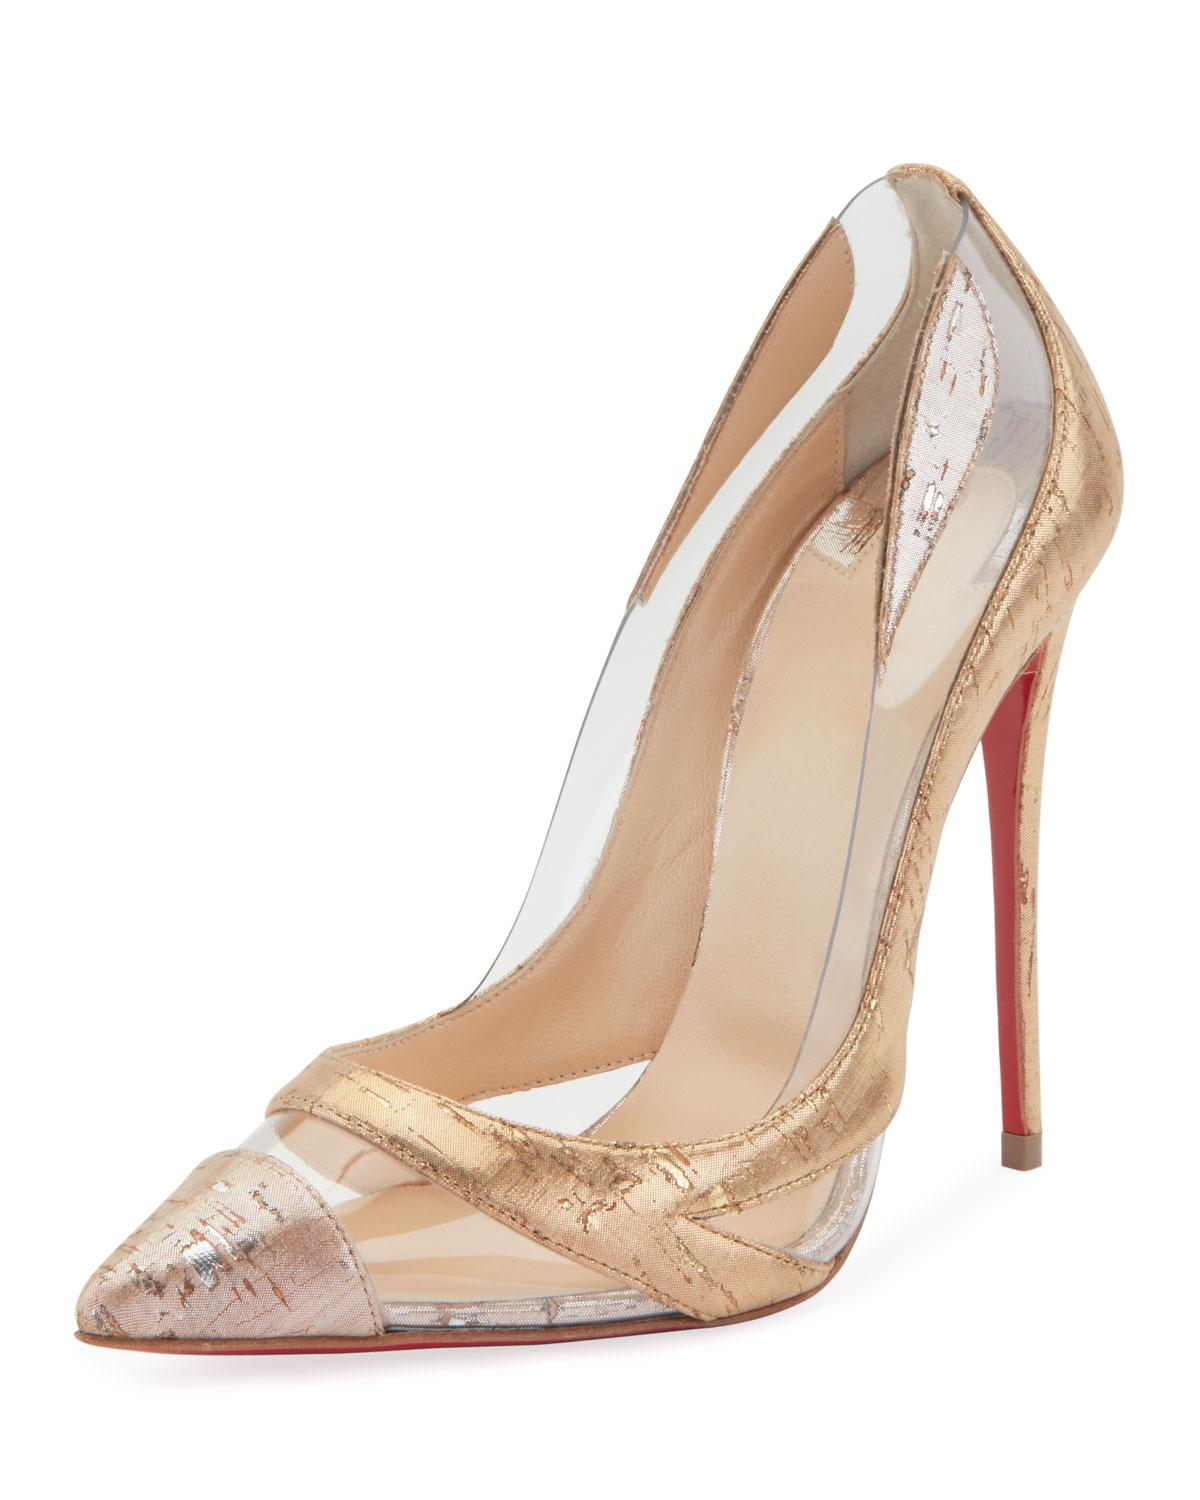 e52bf8f1fbeb Lyst - Christian Louboutin Blake Is Back Cork pvc Red Sole Pumps in ...